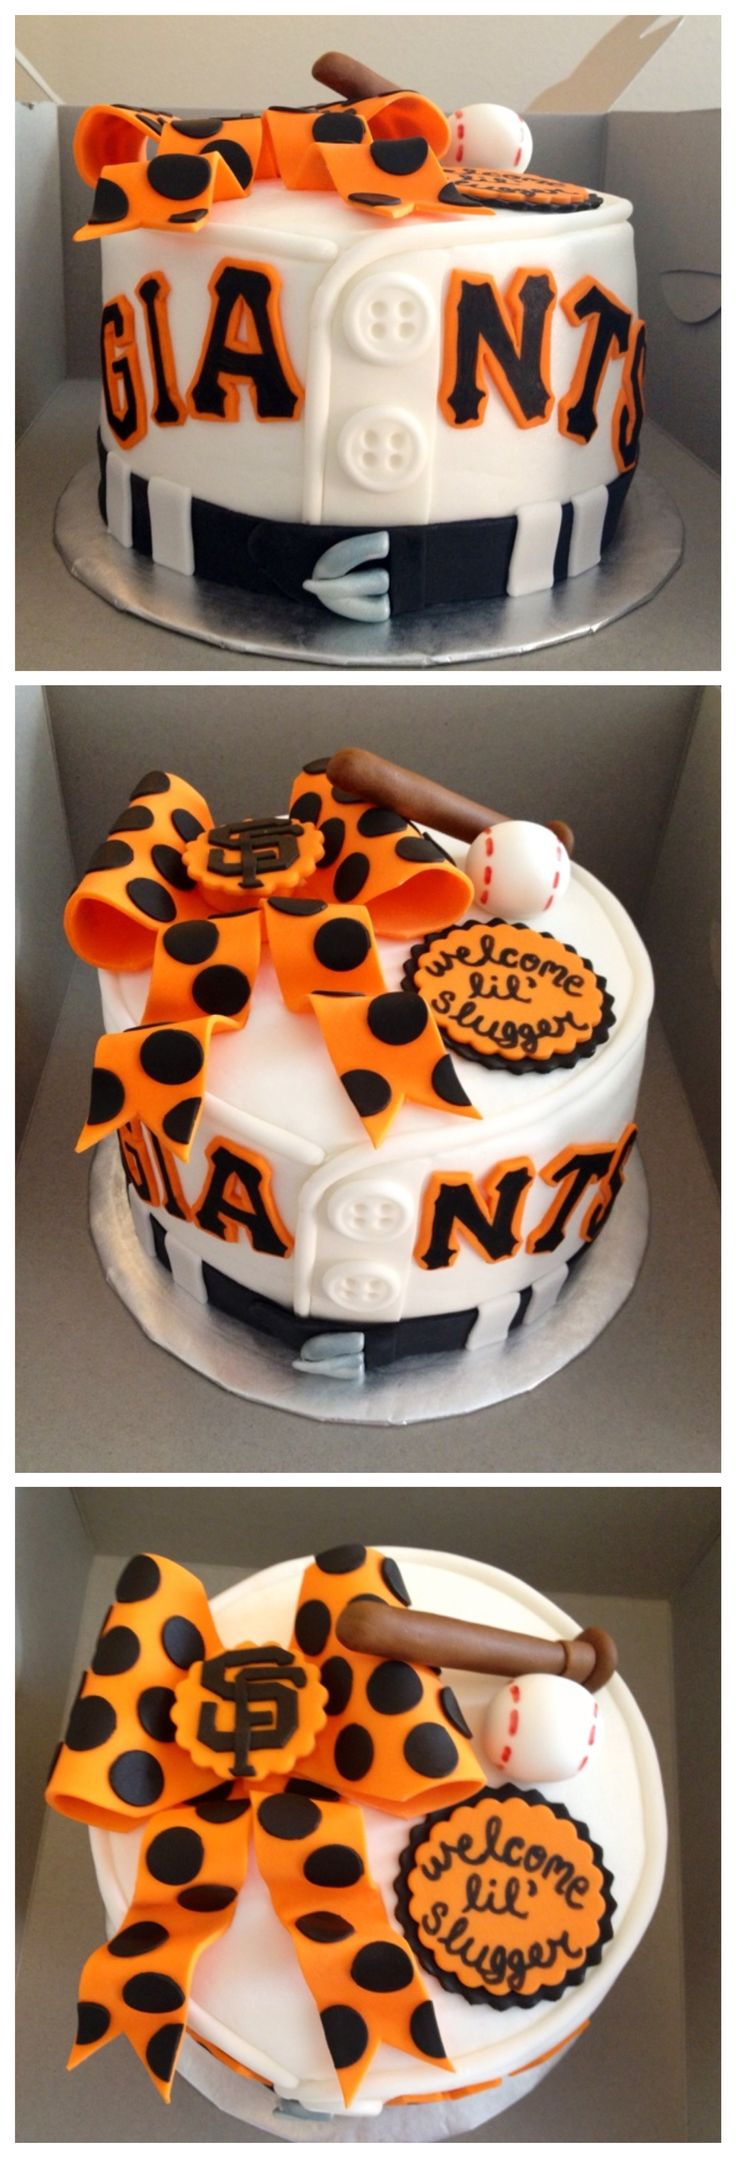 San Francisco Giants baseball themed baby shower cake for a baby girl ...